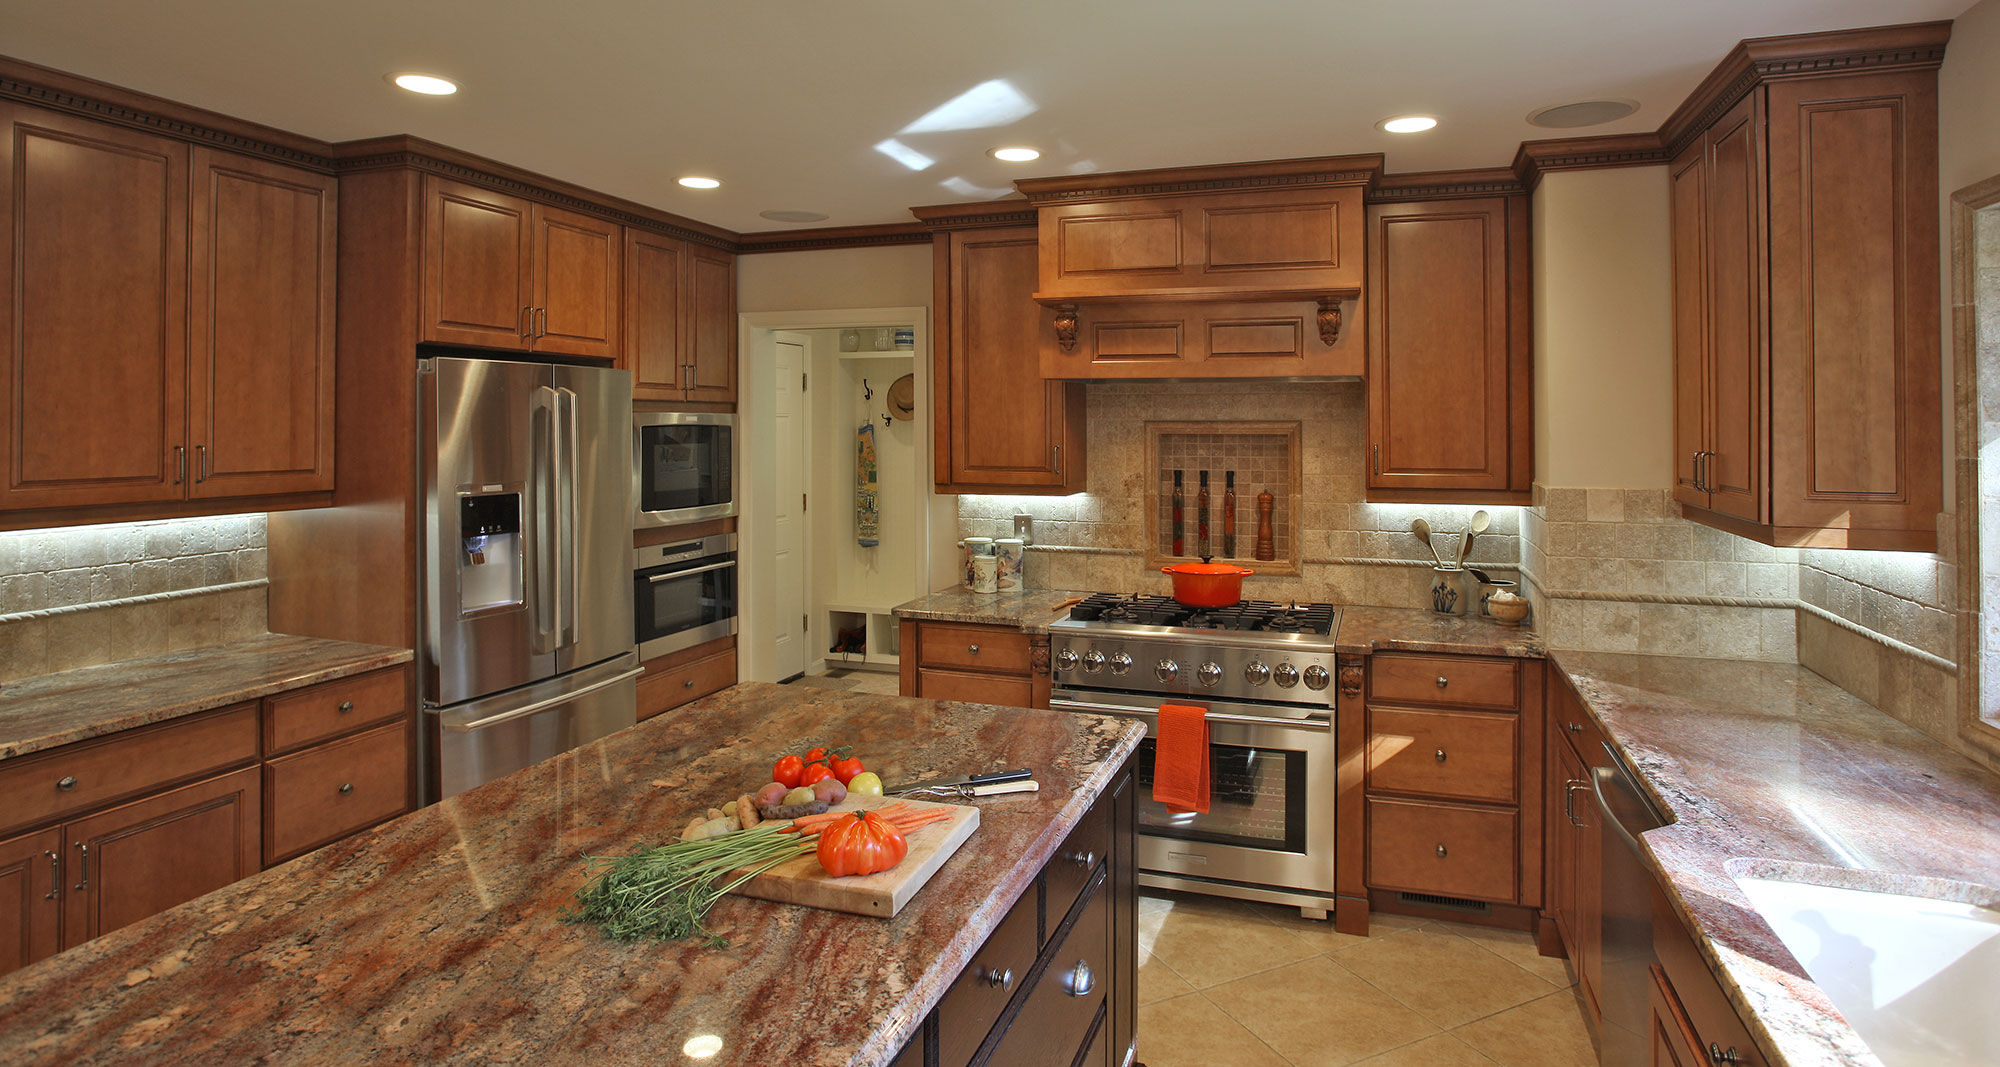 Kitchen Remodeling In Maryland Exterior Interior Cool Kitchen And Bath Remodeling Serving Northern Virginia Maryland . Review